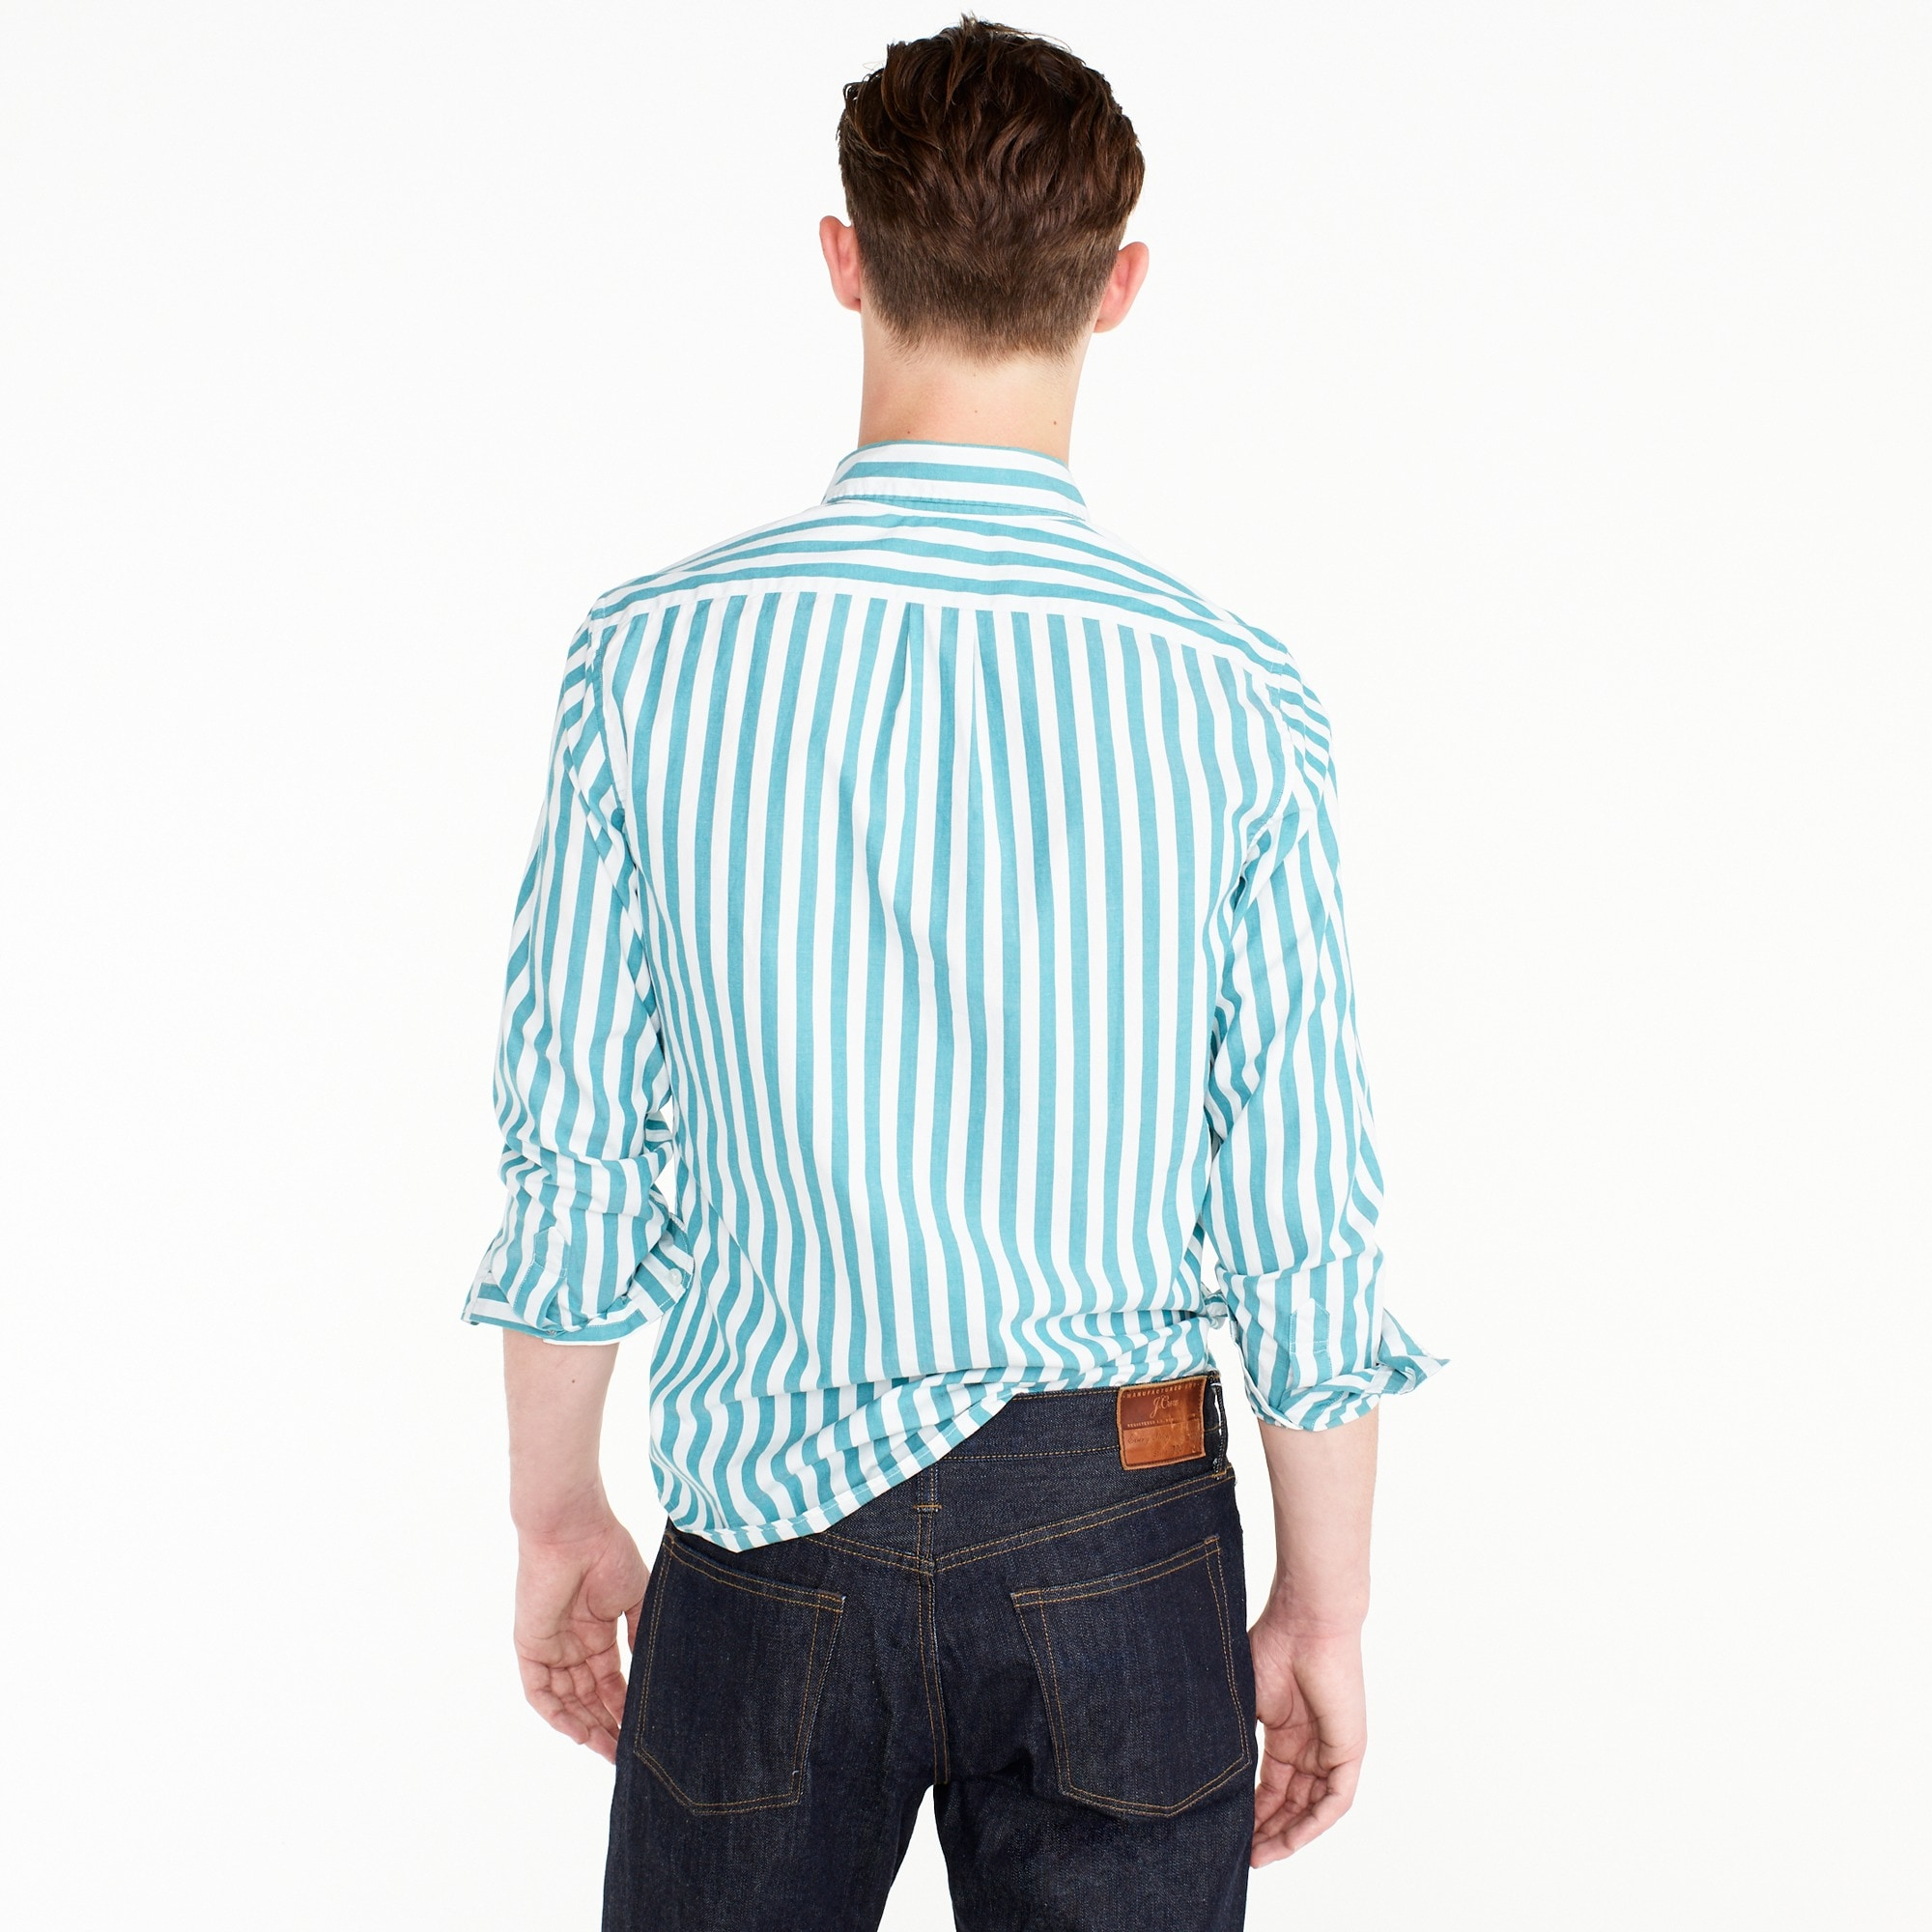 Image 3 for Slim stretch Secret Wash shirt in turquoise stripe